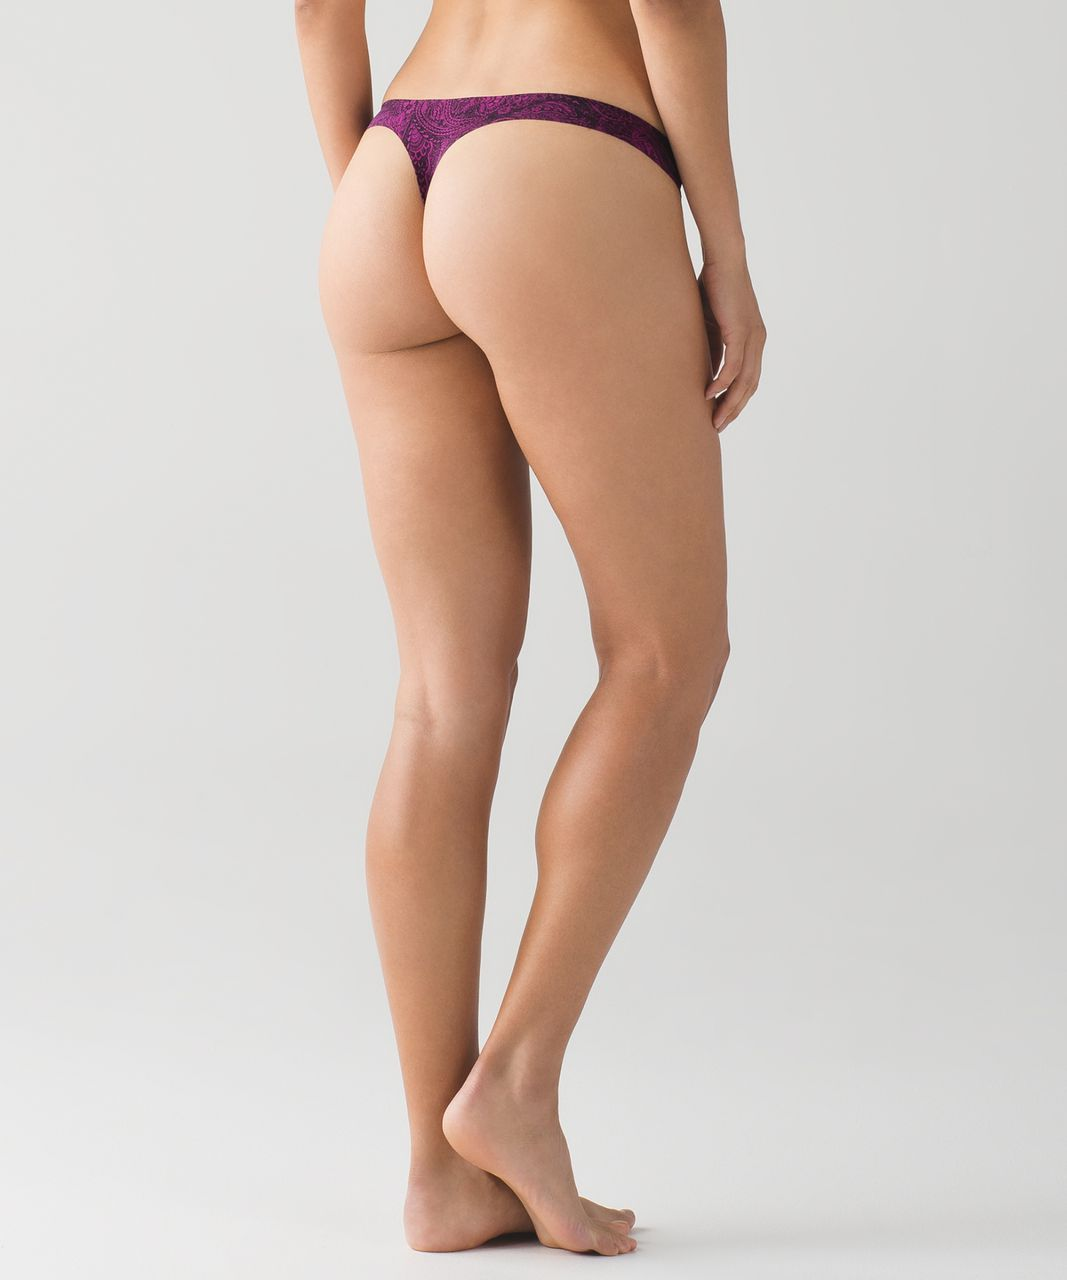 Lululemon Namastay Put Thong - Mini Antique Paisley Deep Fuschia Black